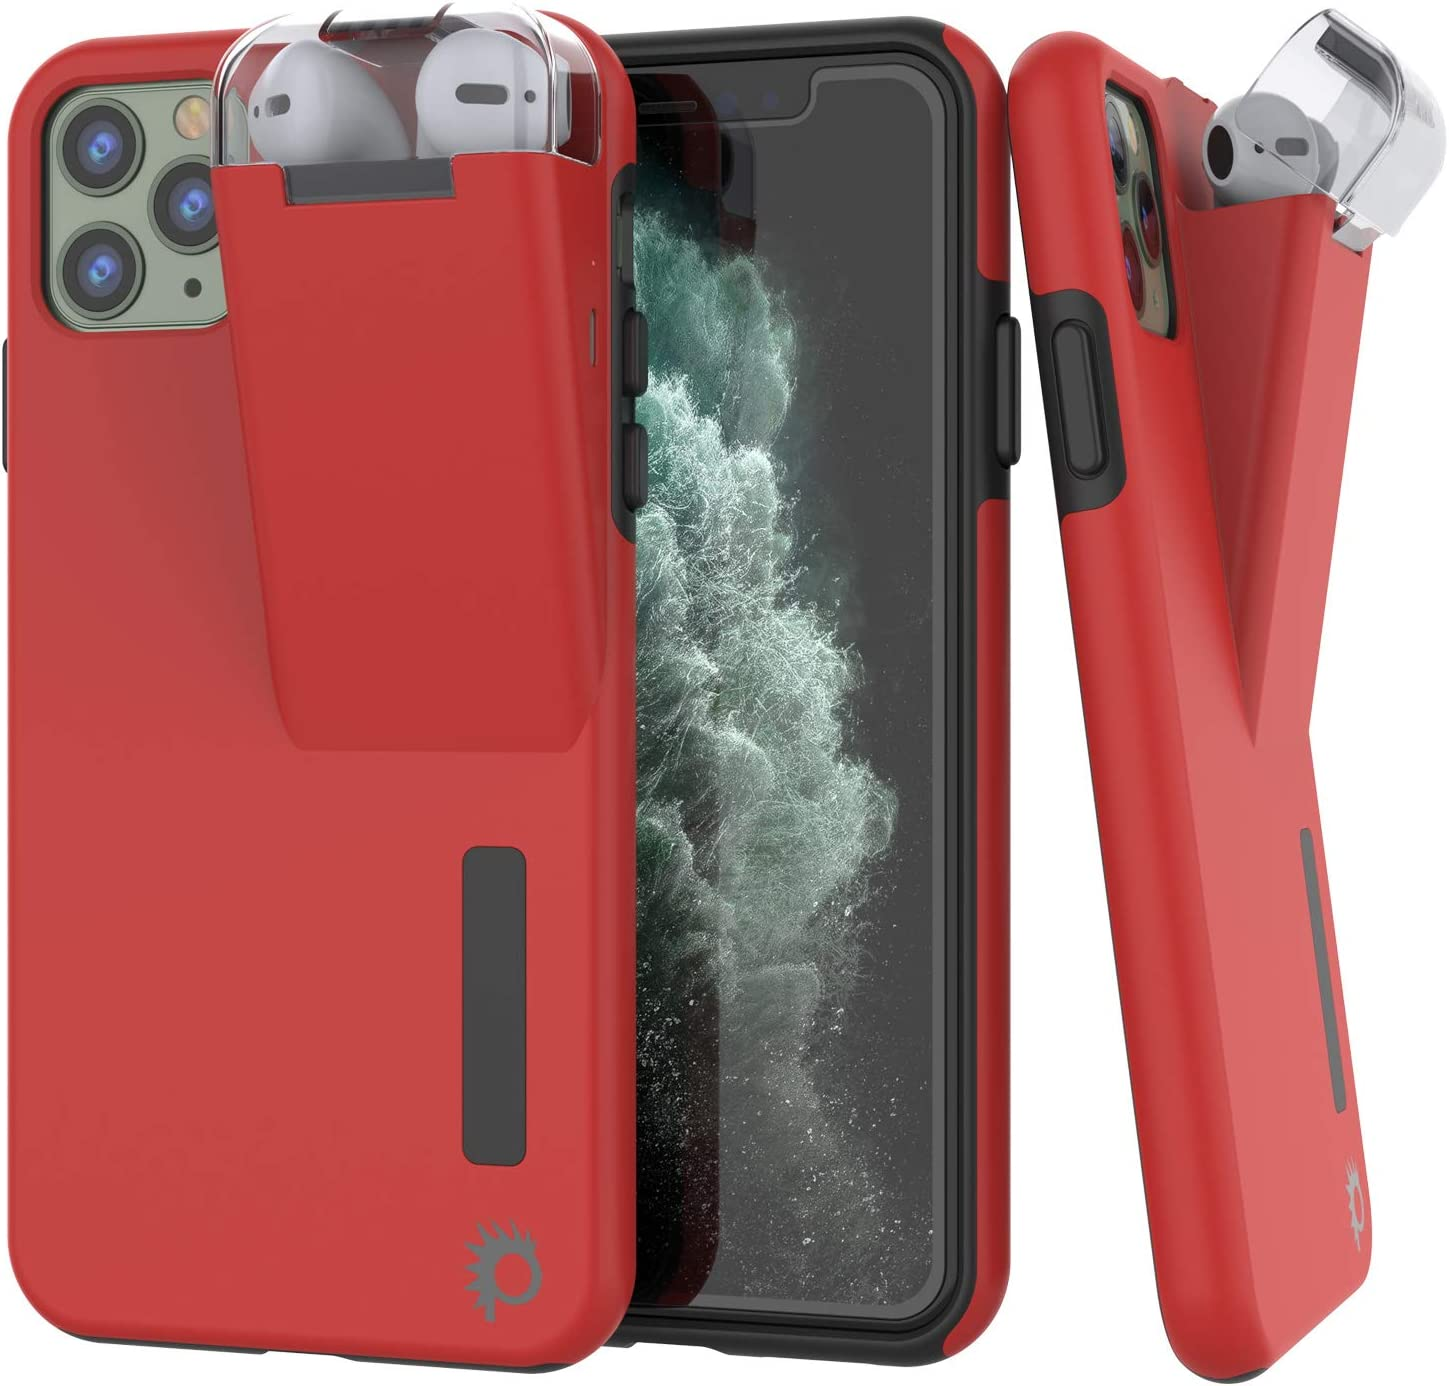 Punkcase iPhone 11 Pro Airpod Charging Case Holder | Slim & Durable 2 in 1 Cover Designed for iPhone 11 Pro (5.8